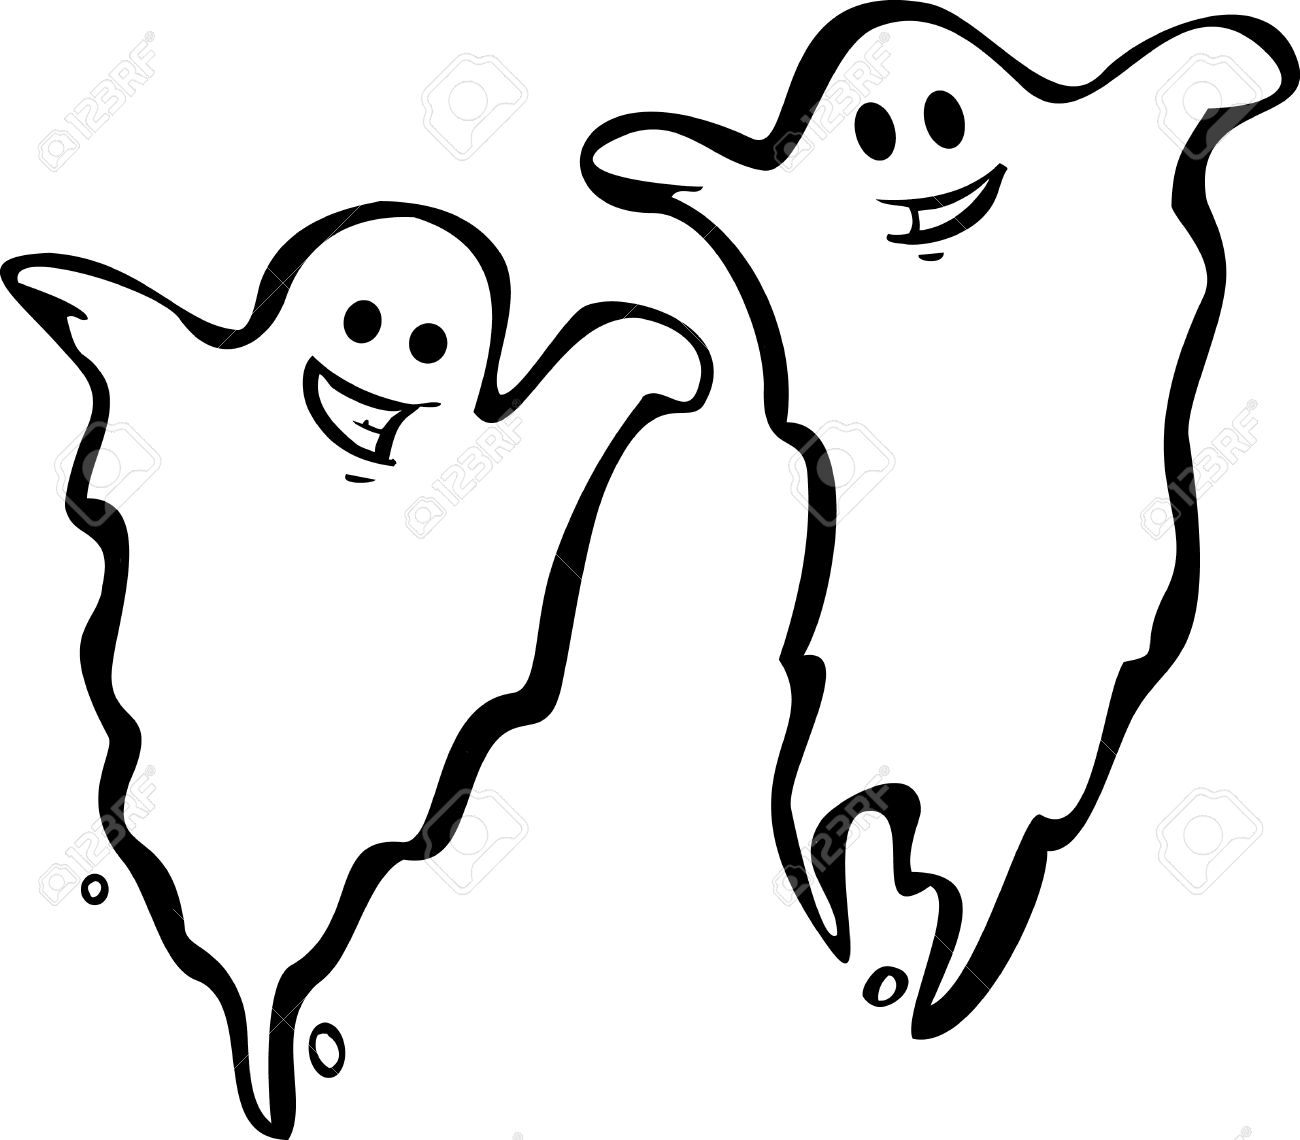 1300x1140 Cool Halloween Ghosts With Halloween Ghost On Uncategorized Design